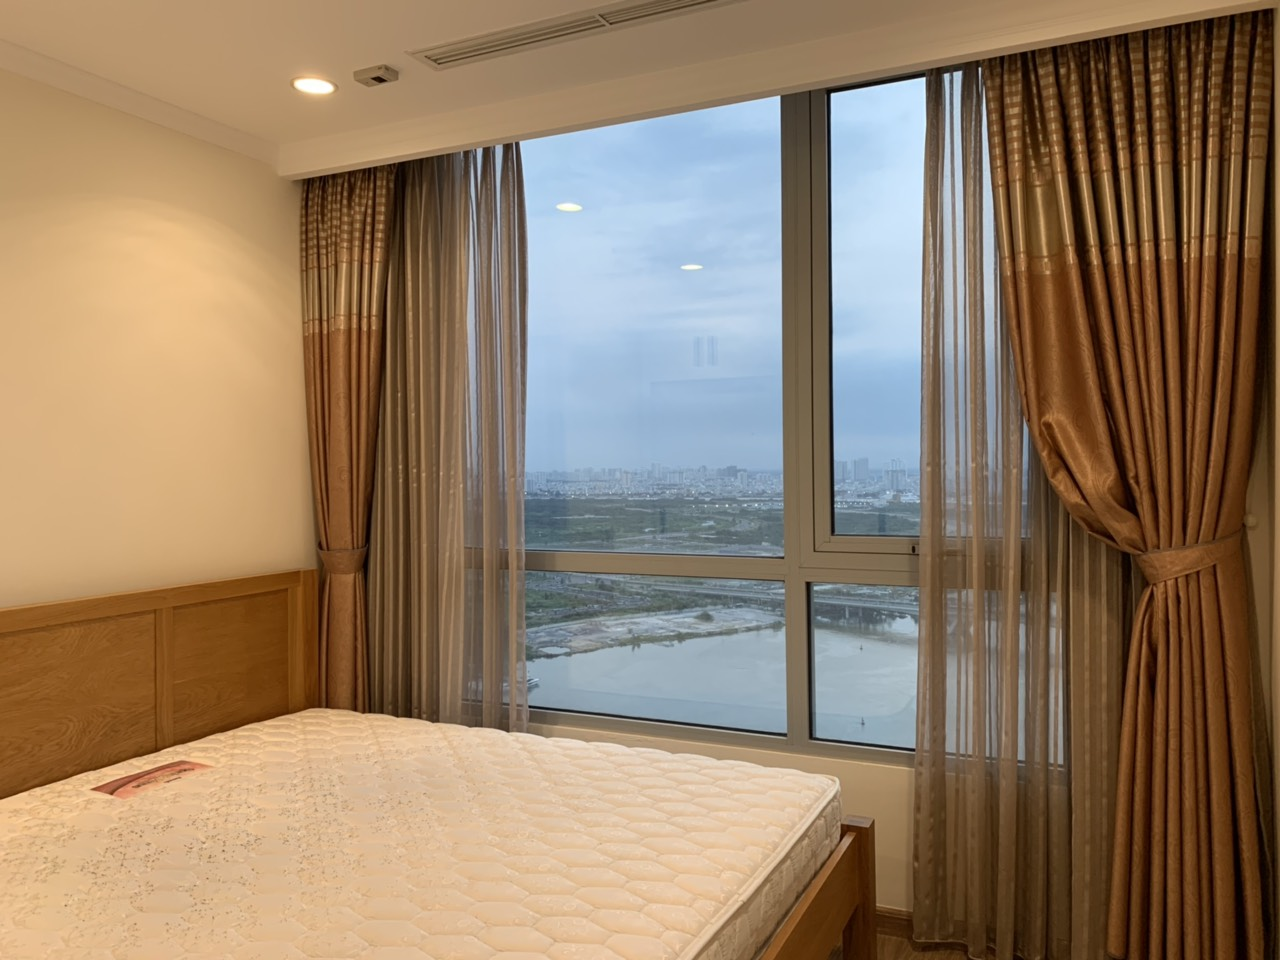 vinhomes central park apartment for rent in binh thanh district hcmc BT105850(6)